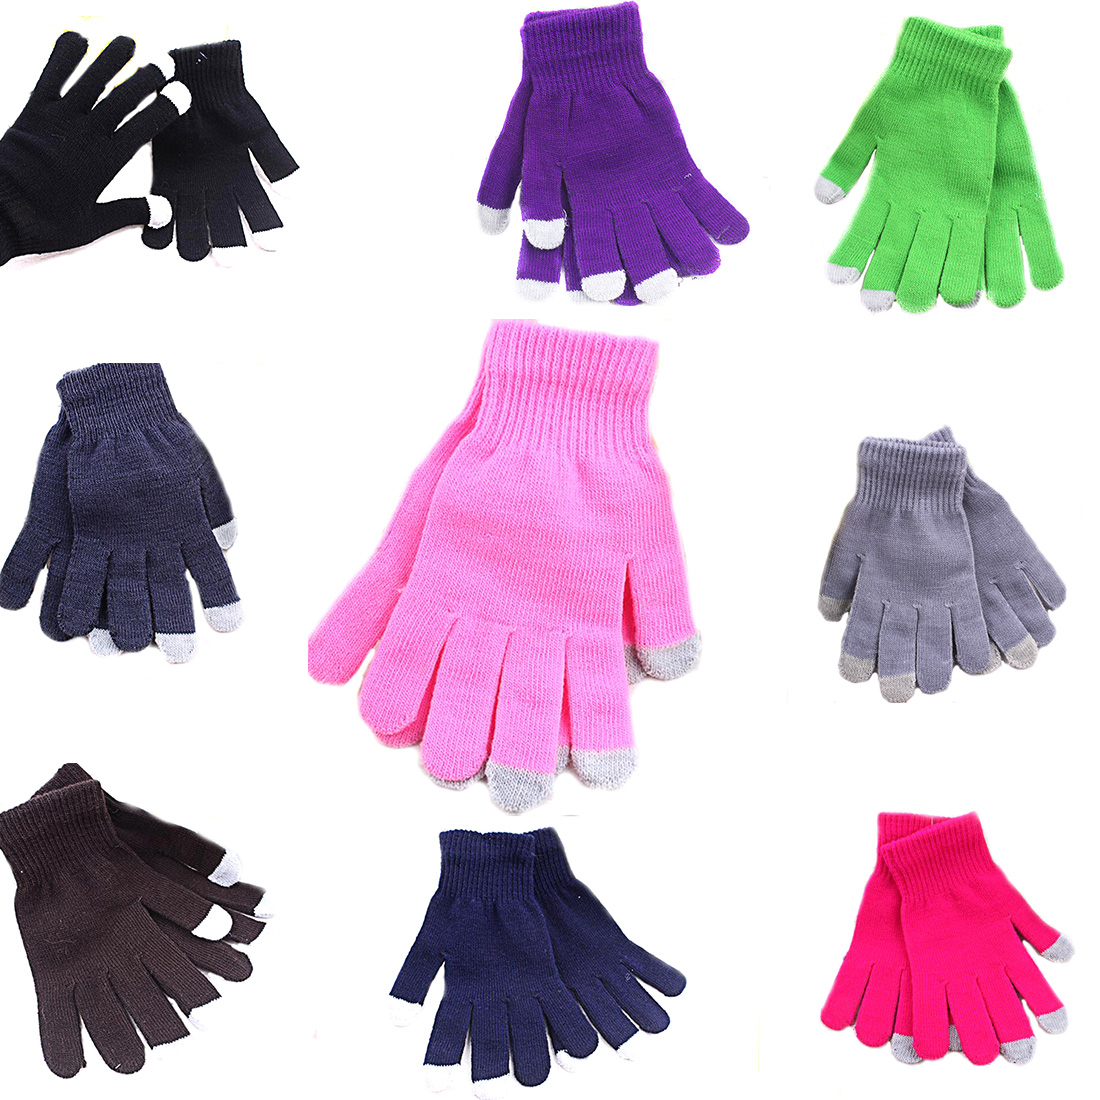 1 Pair Women/Men Comfortable Touch Screen Gloves Fashion Wrist Casual Gloves Tablet Warm Knit Winter Mitten For Smart Phone